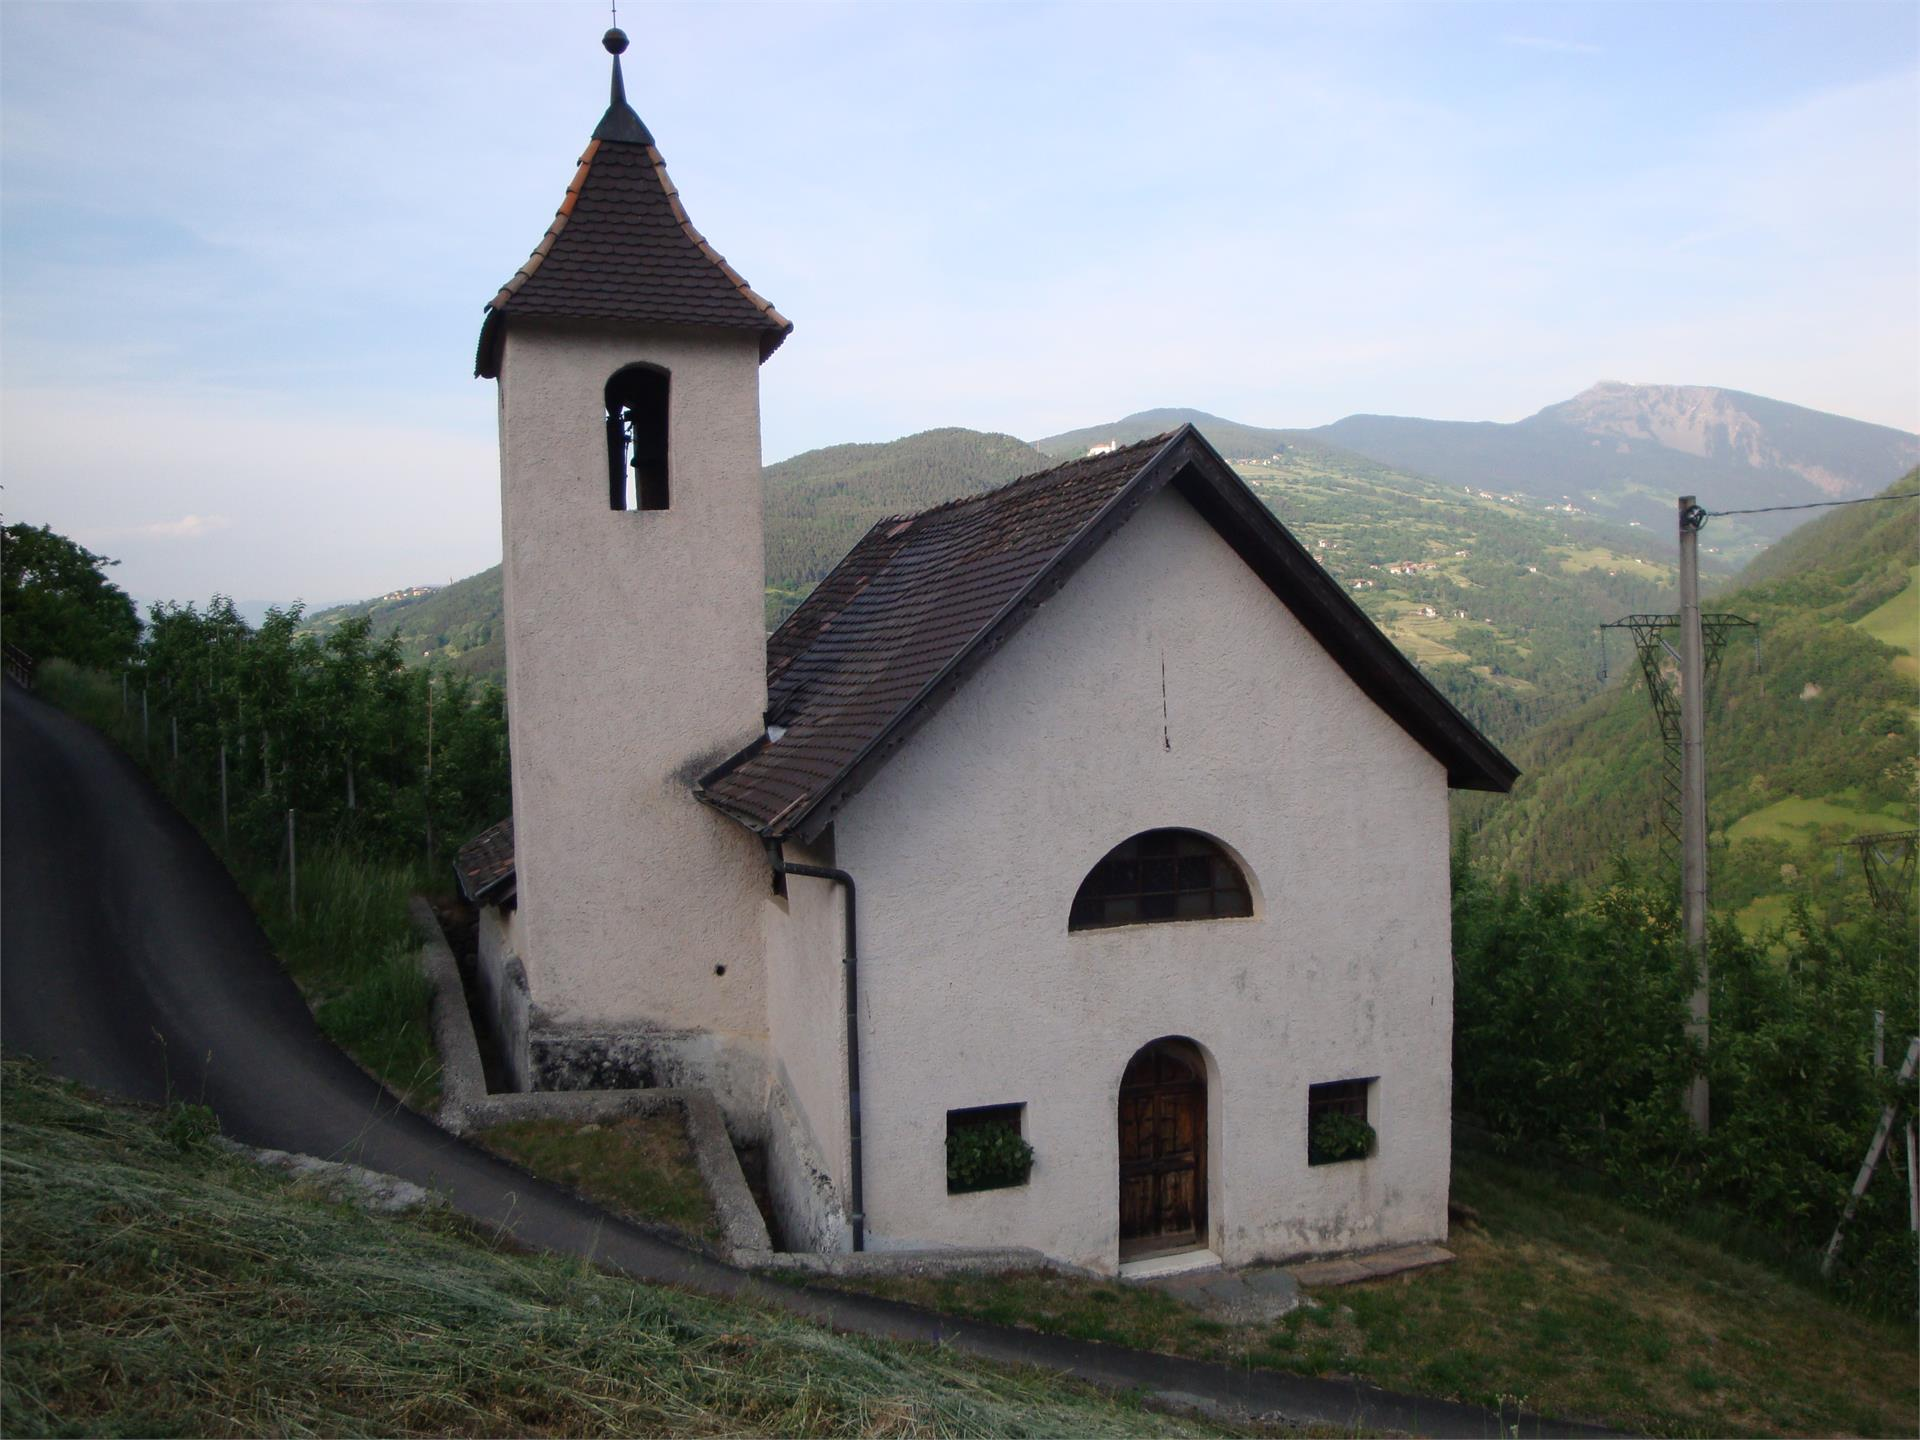 Heilig-Grab-Kapelle in Barbian